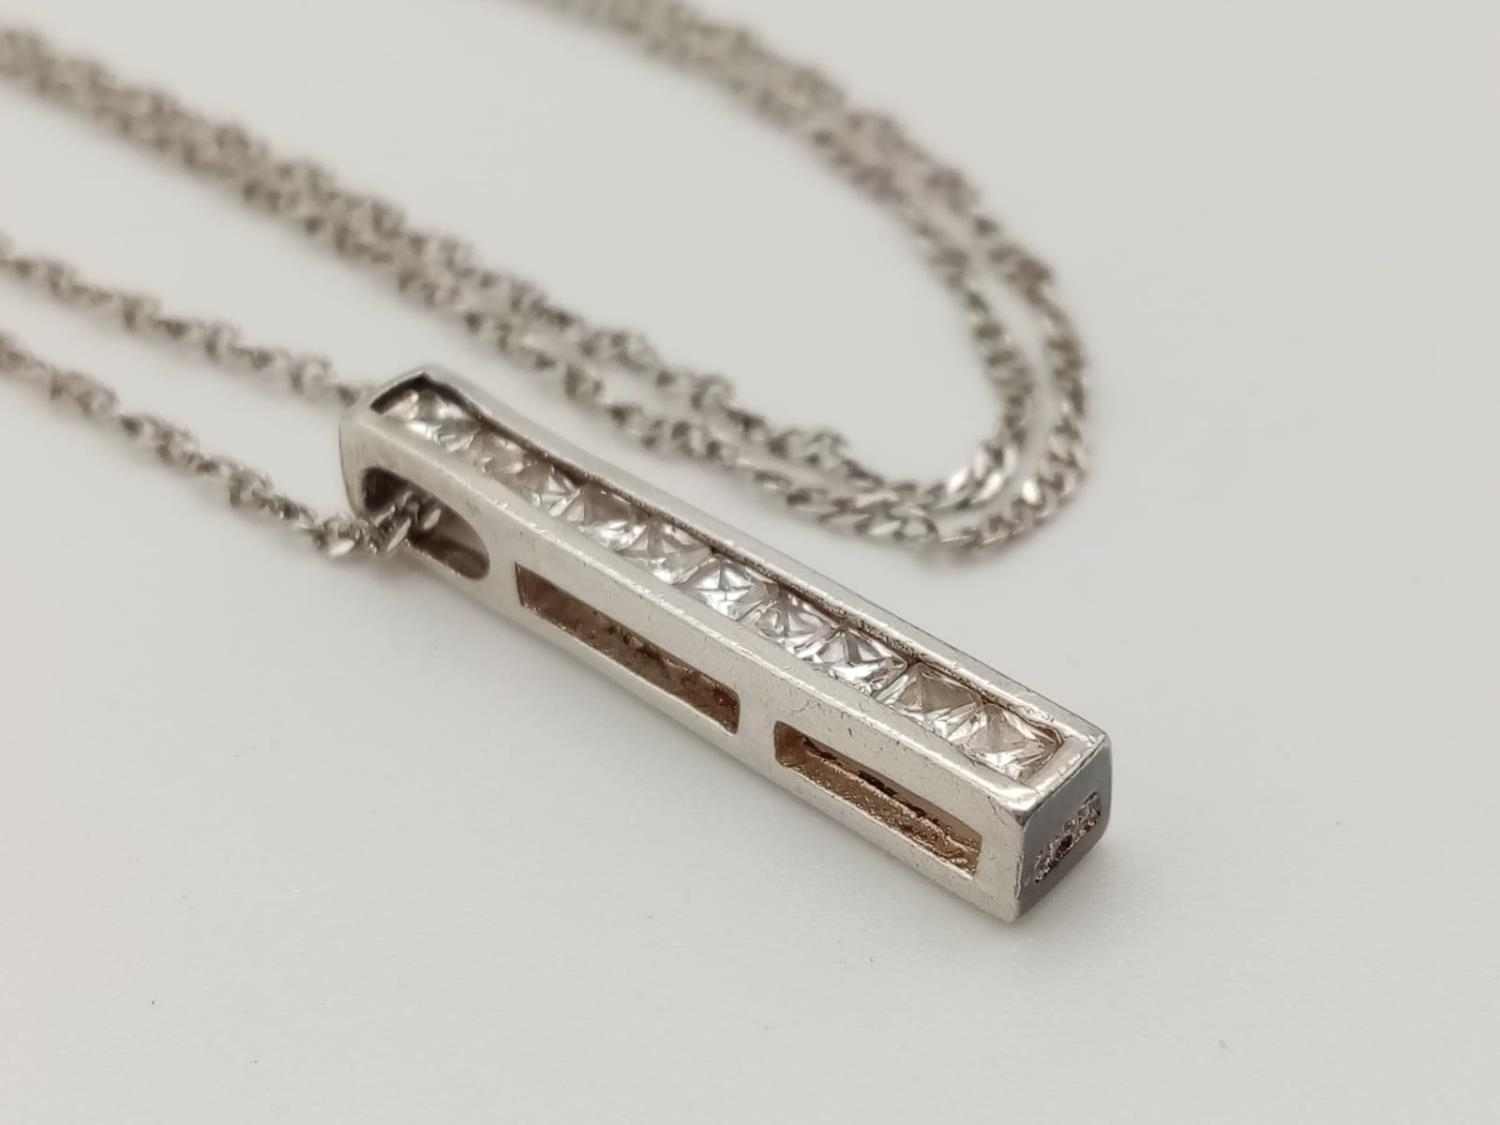 Sterling silver stone set pendant necklace in presentation box - Image 3 of 6